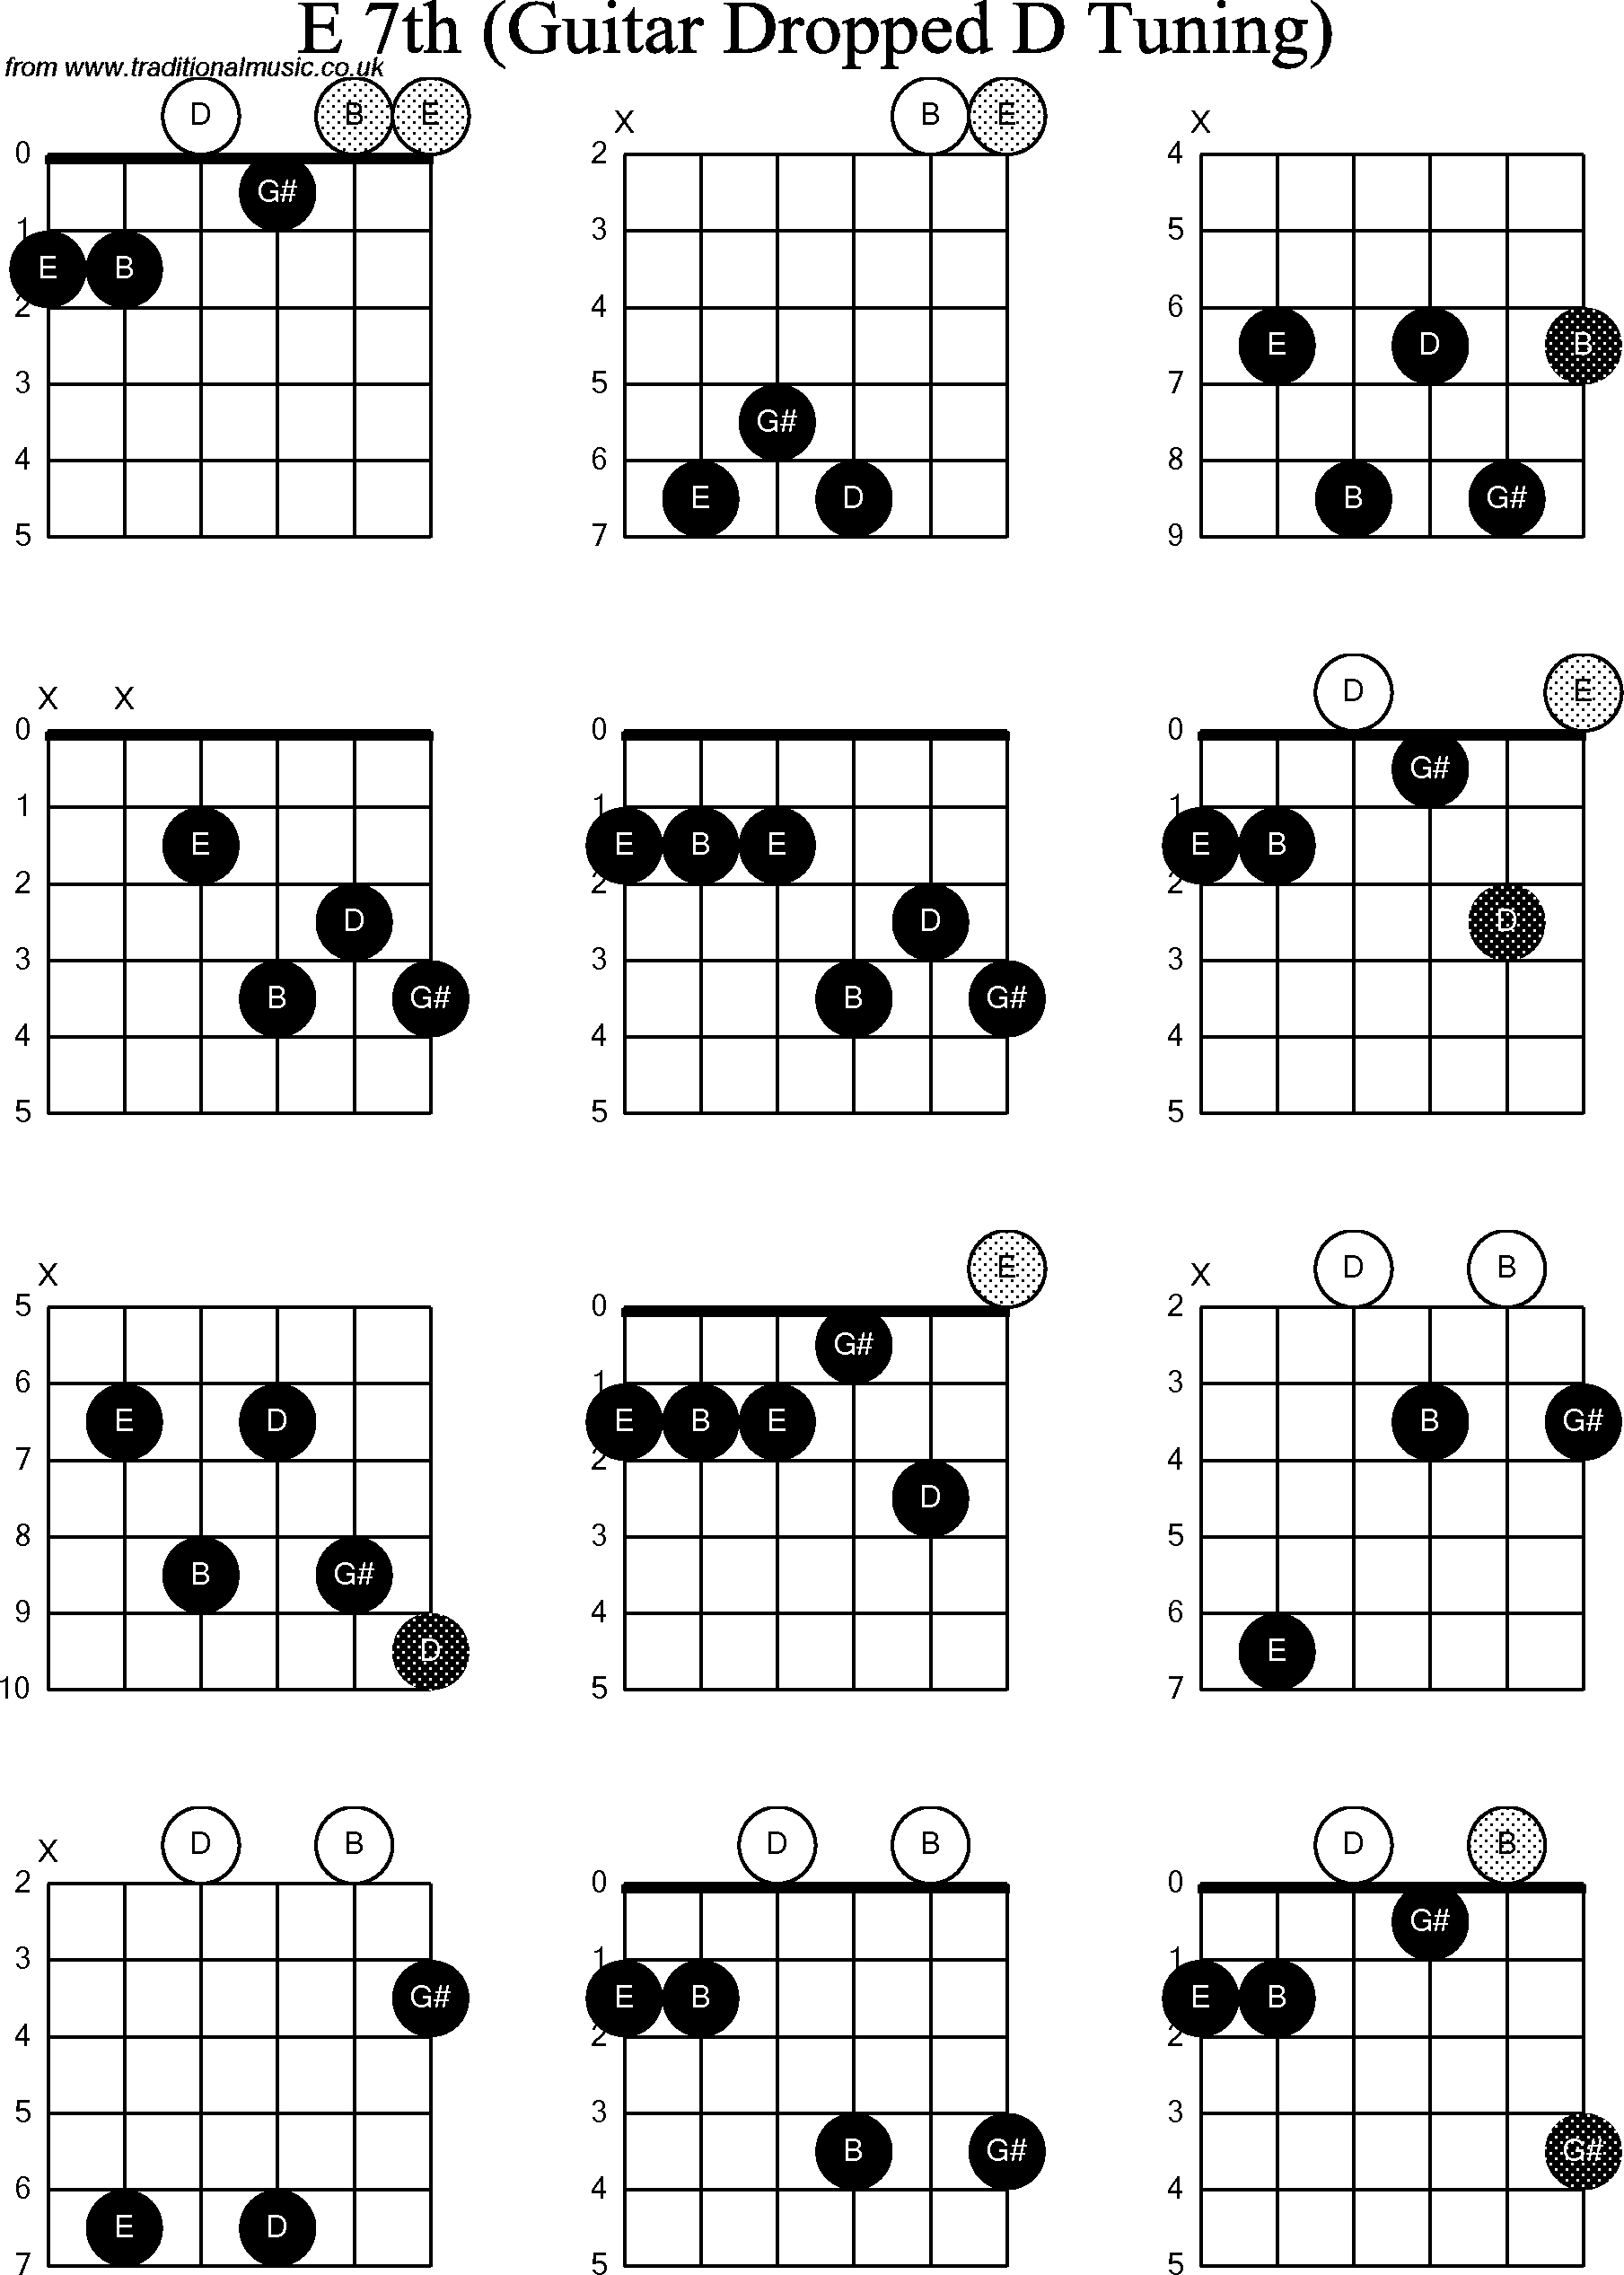 chord diagrams for dropped d guitar dadgbe   e7th